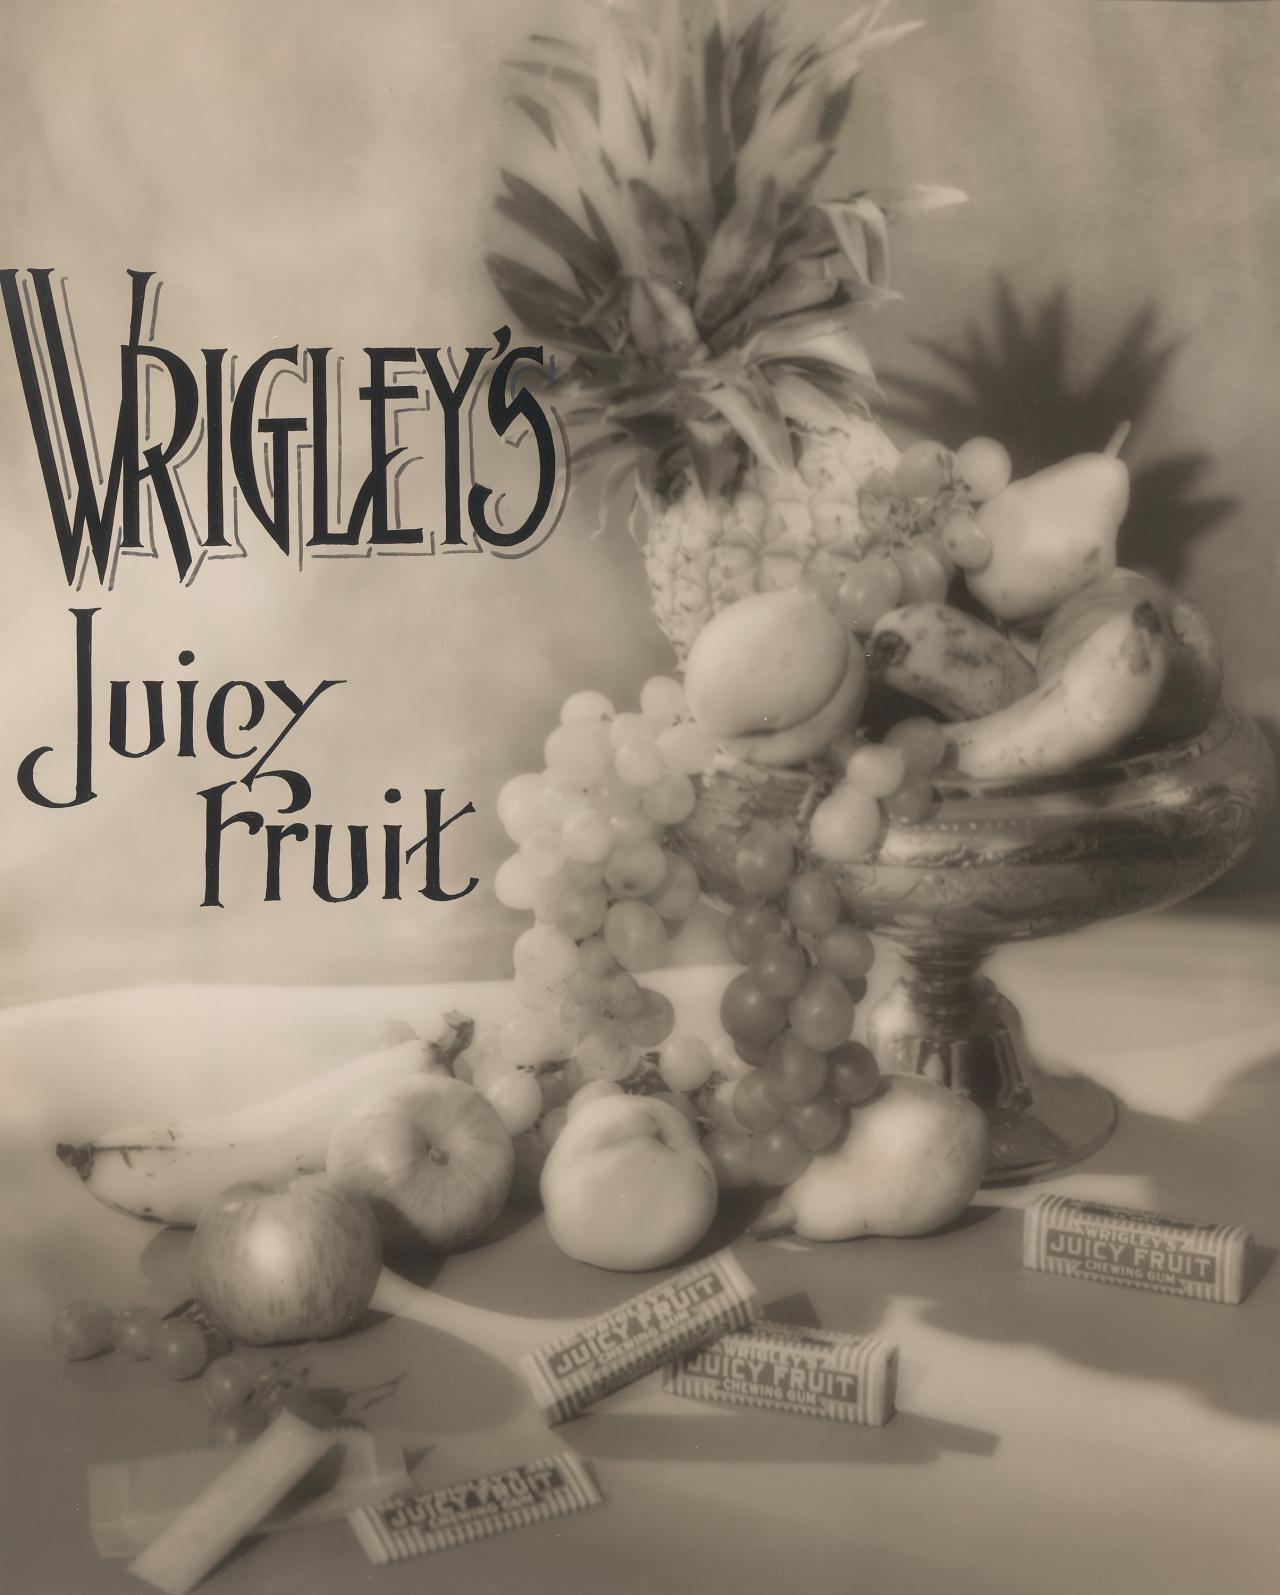 Advertisement for Wrigley's Juicy Fruit